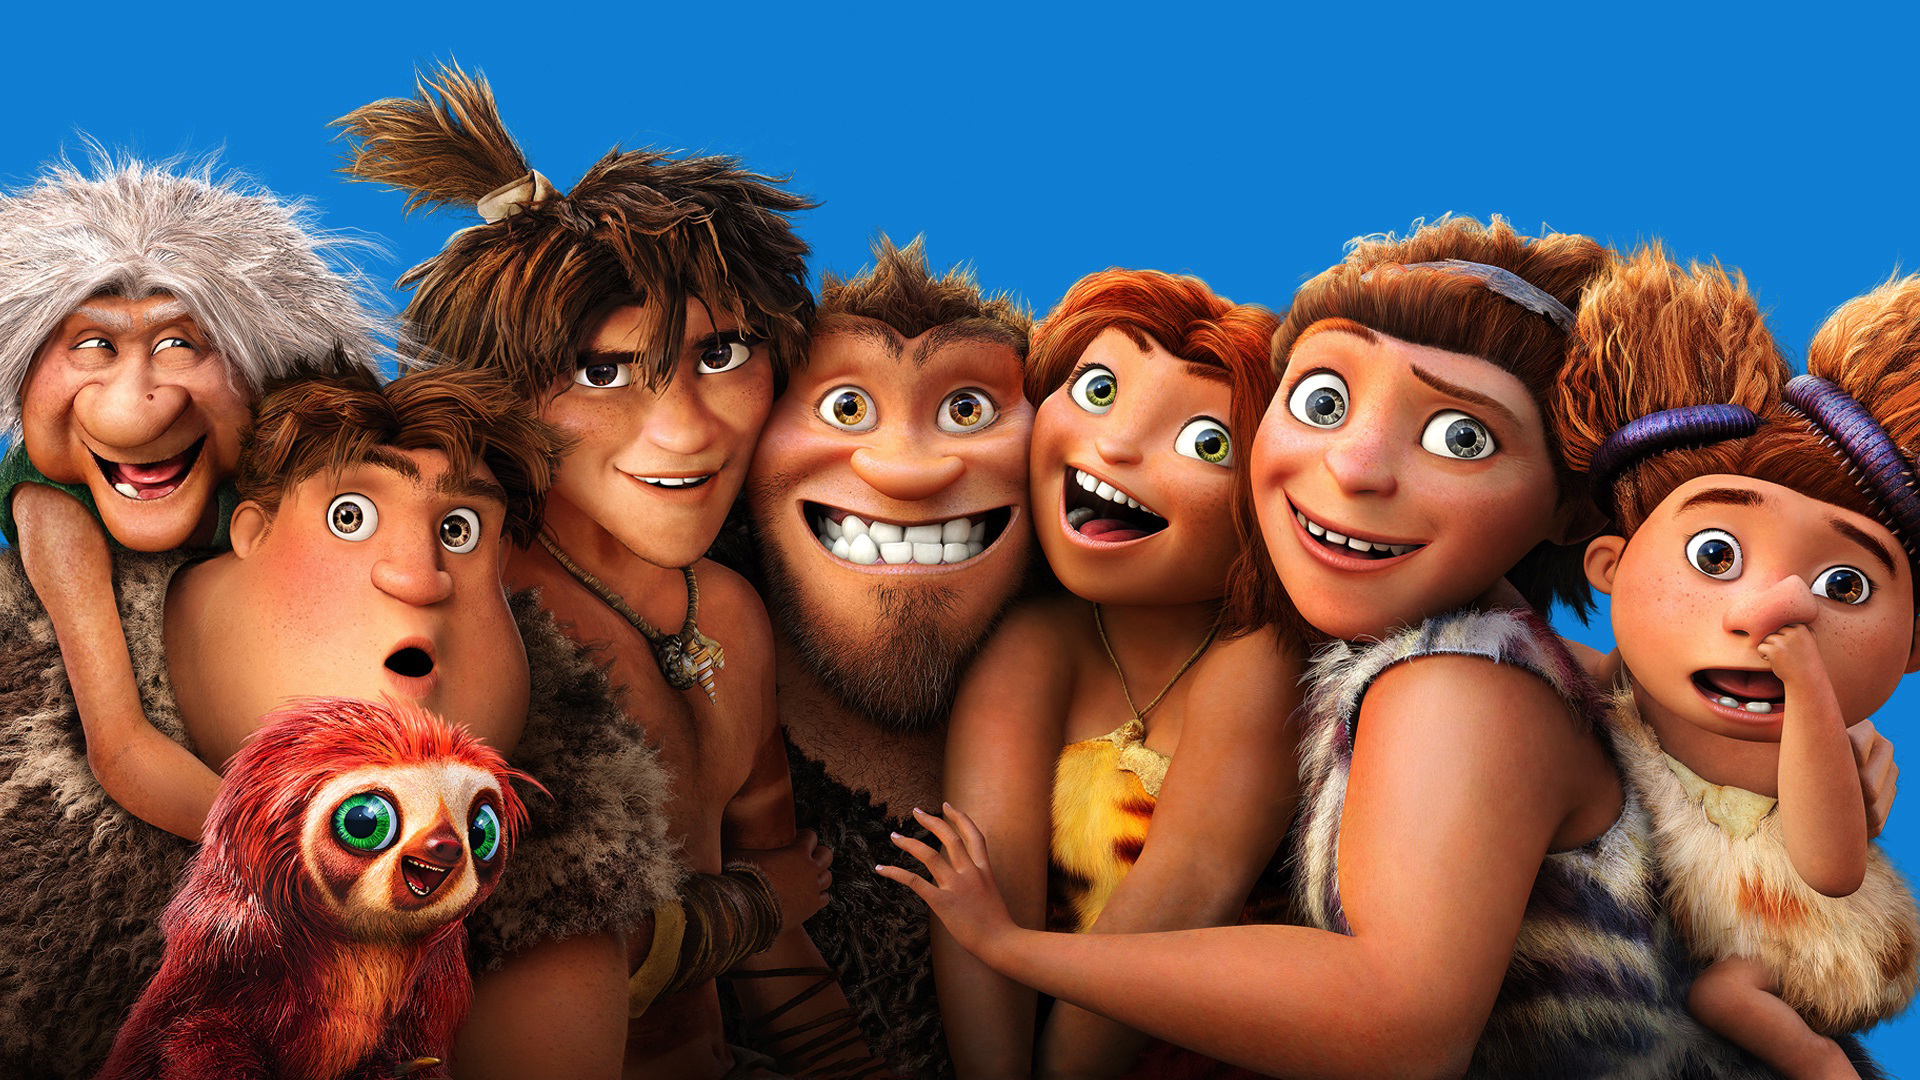 The croods movie desktop wallpaper 61681 1920x1080 px the croods movie desktop wallpaper 61681 voltagebd Gallery